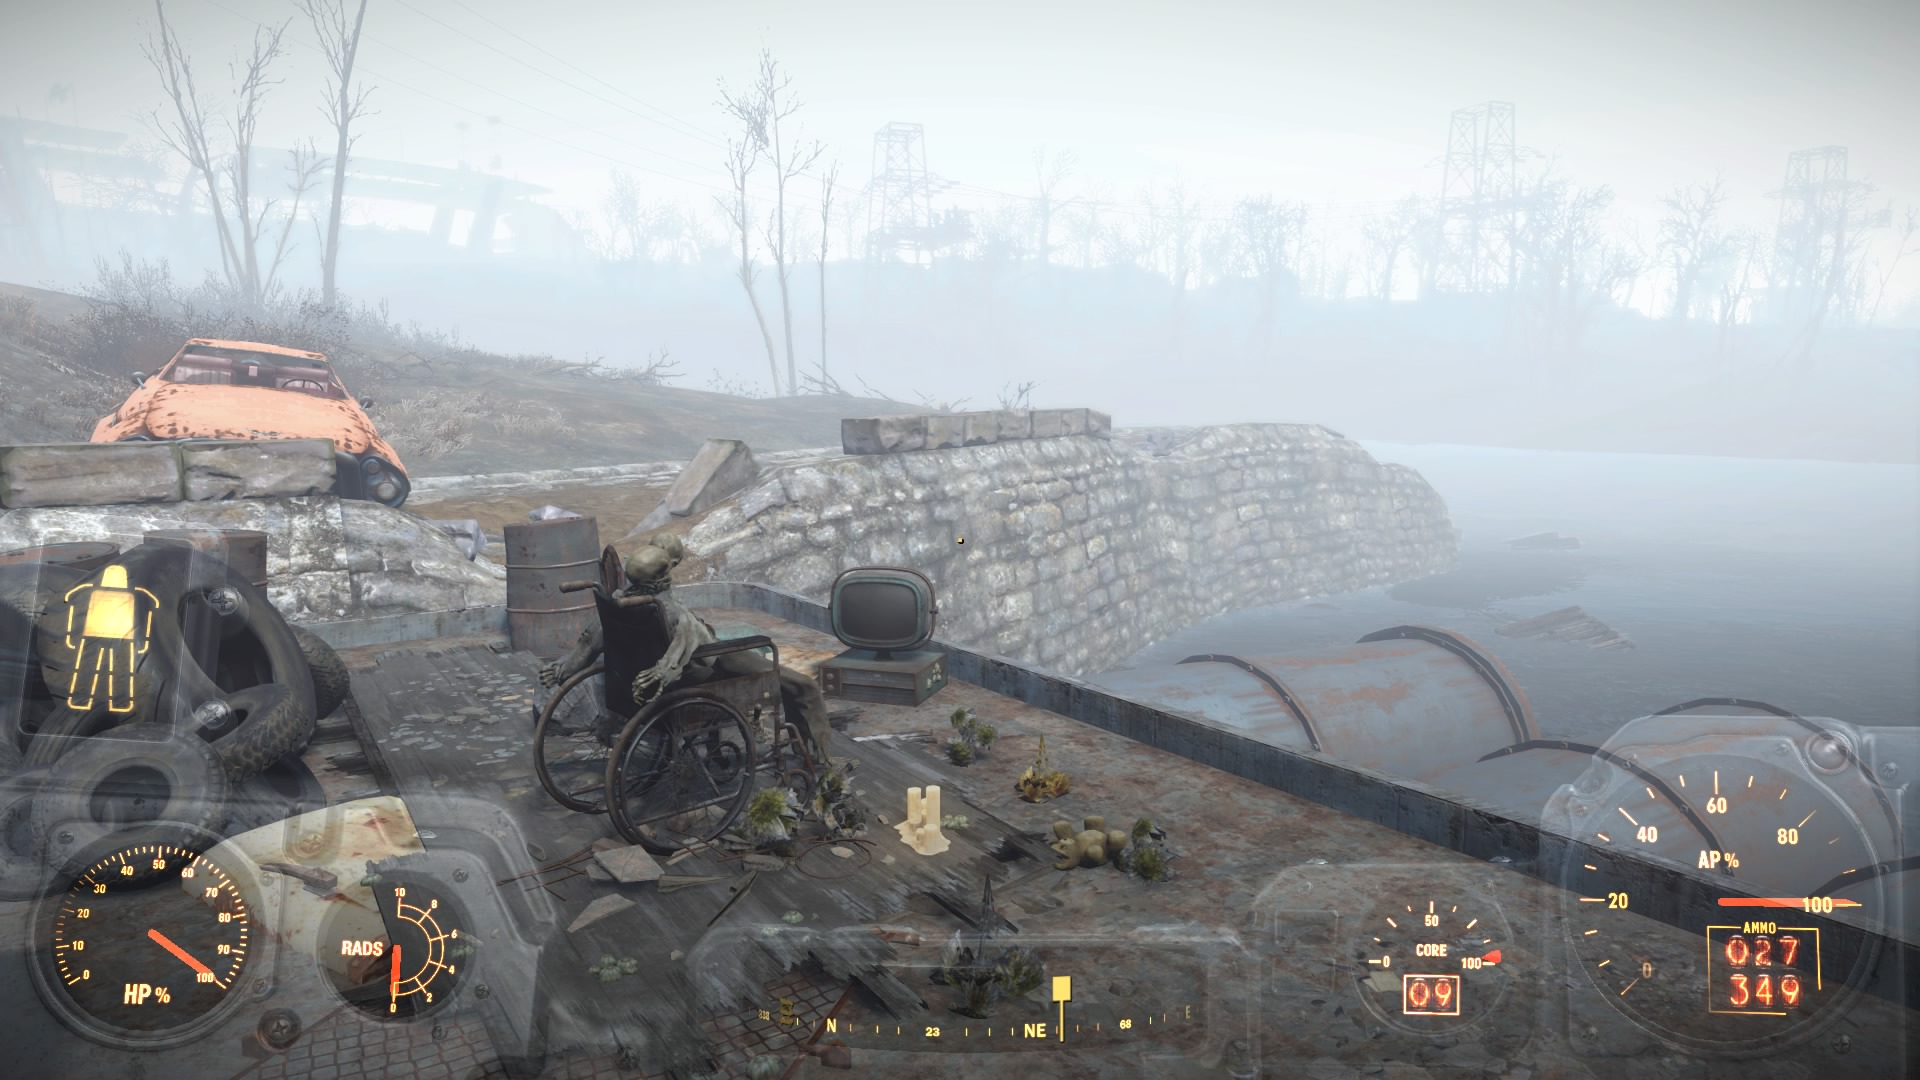 Amazingly, wearing Power Armour doesn't seem to affect your stealthiness.